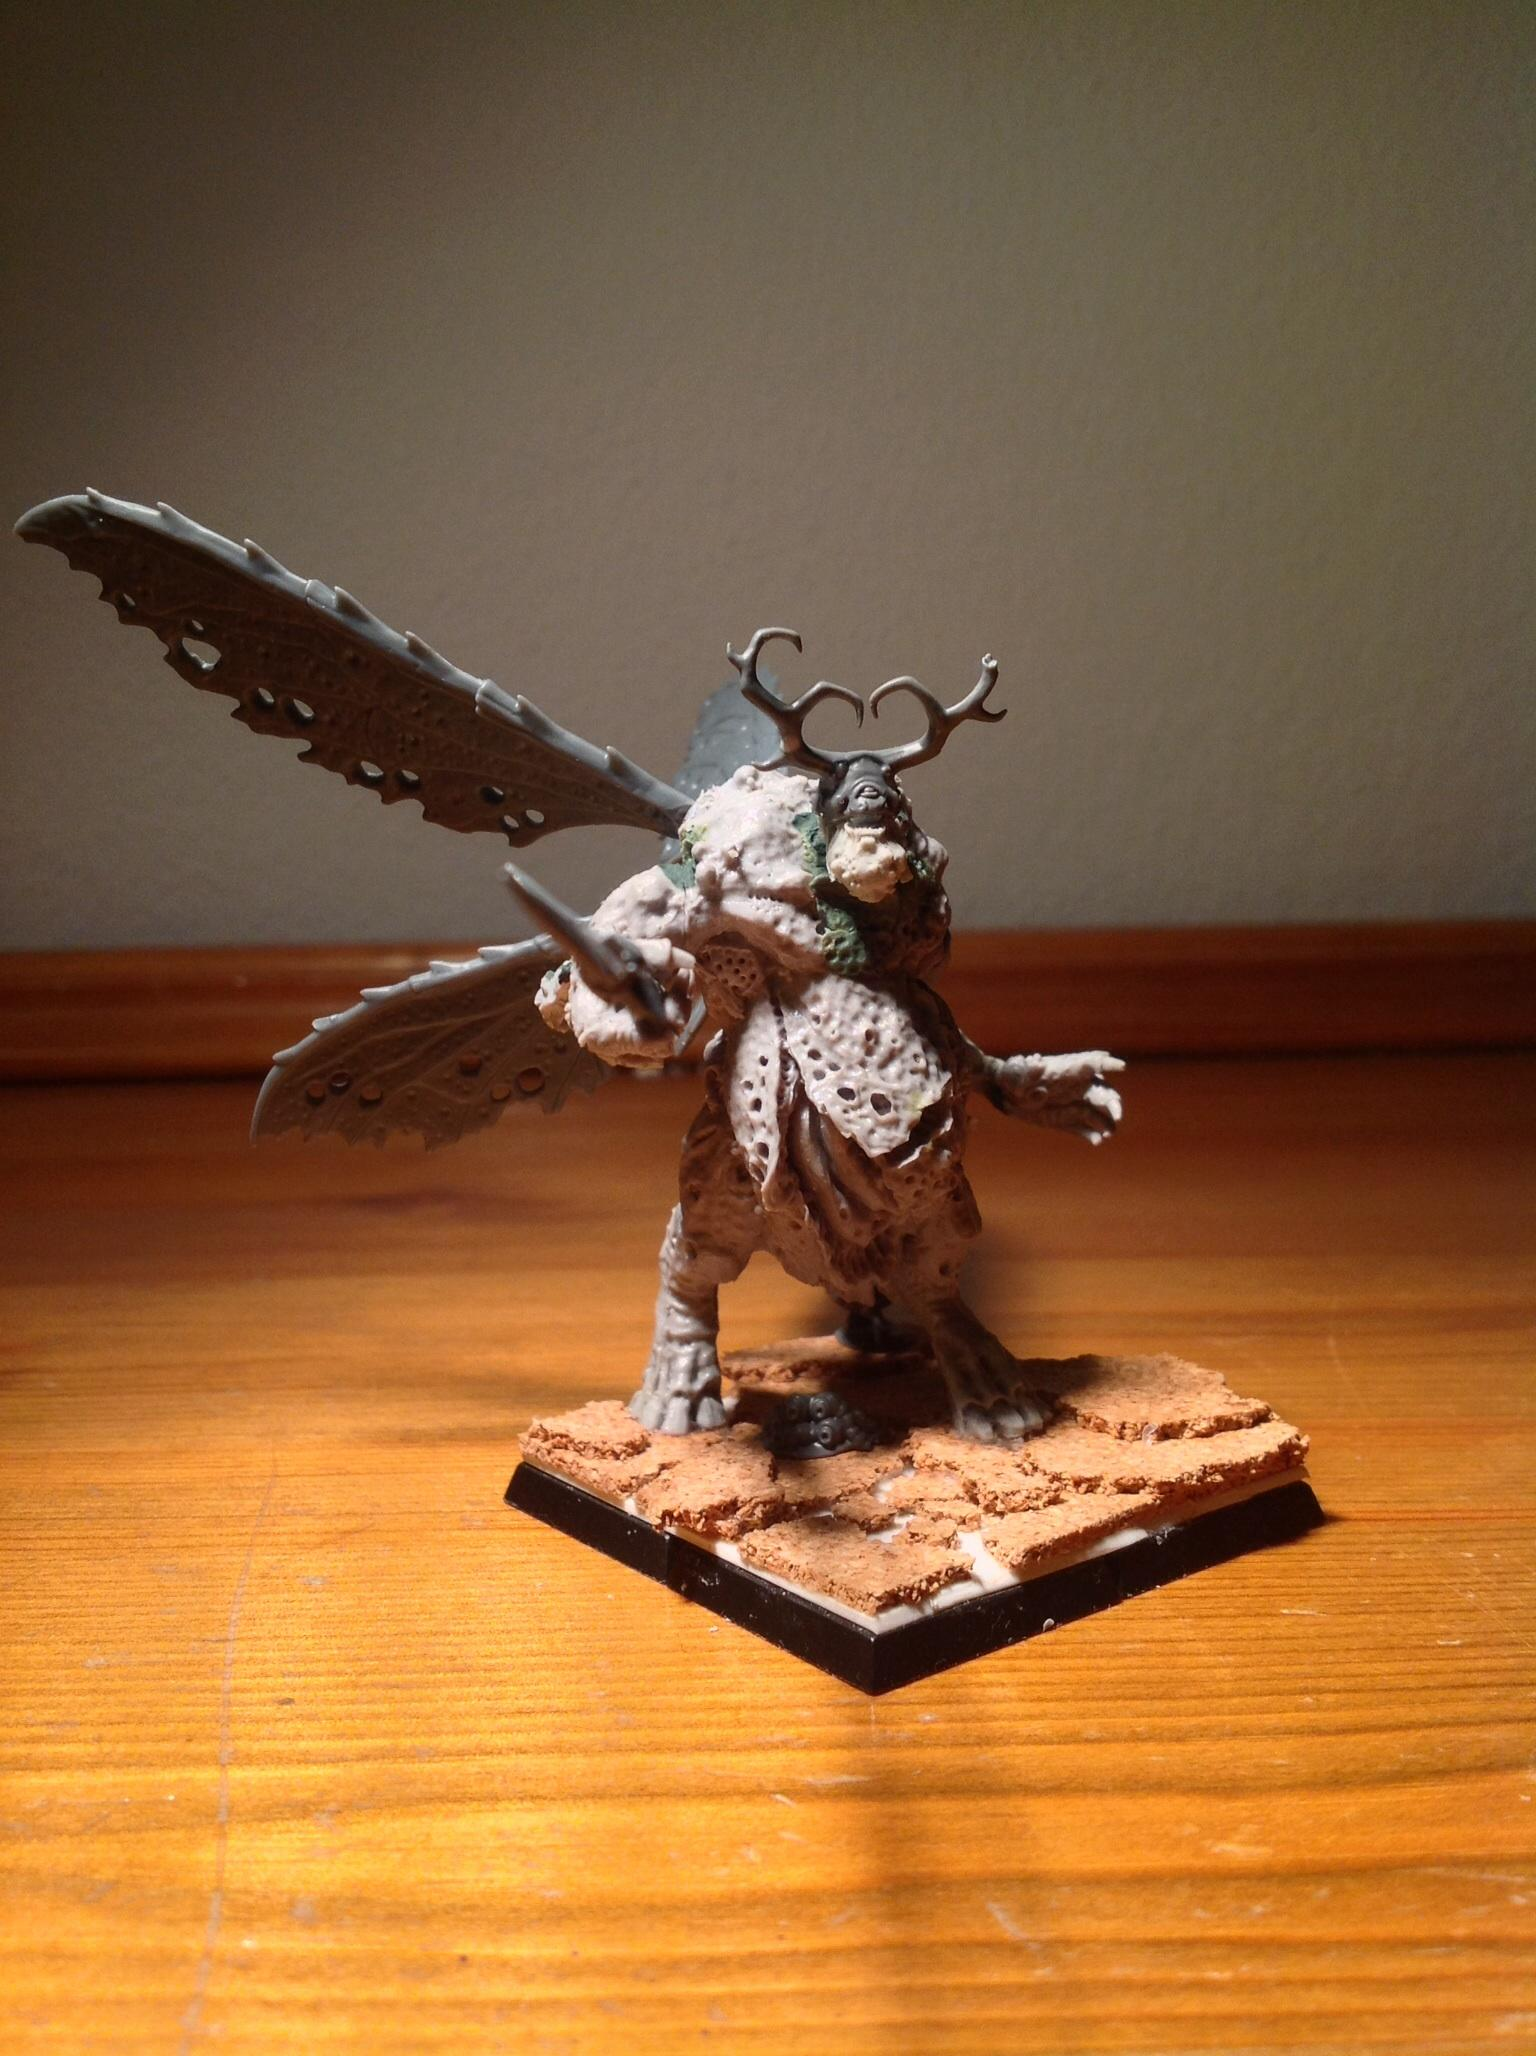 Antlers, Chaos, Daemons, Fly, Nurgle, Plague